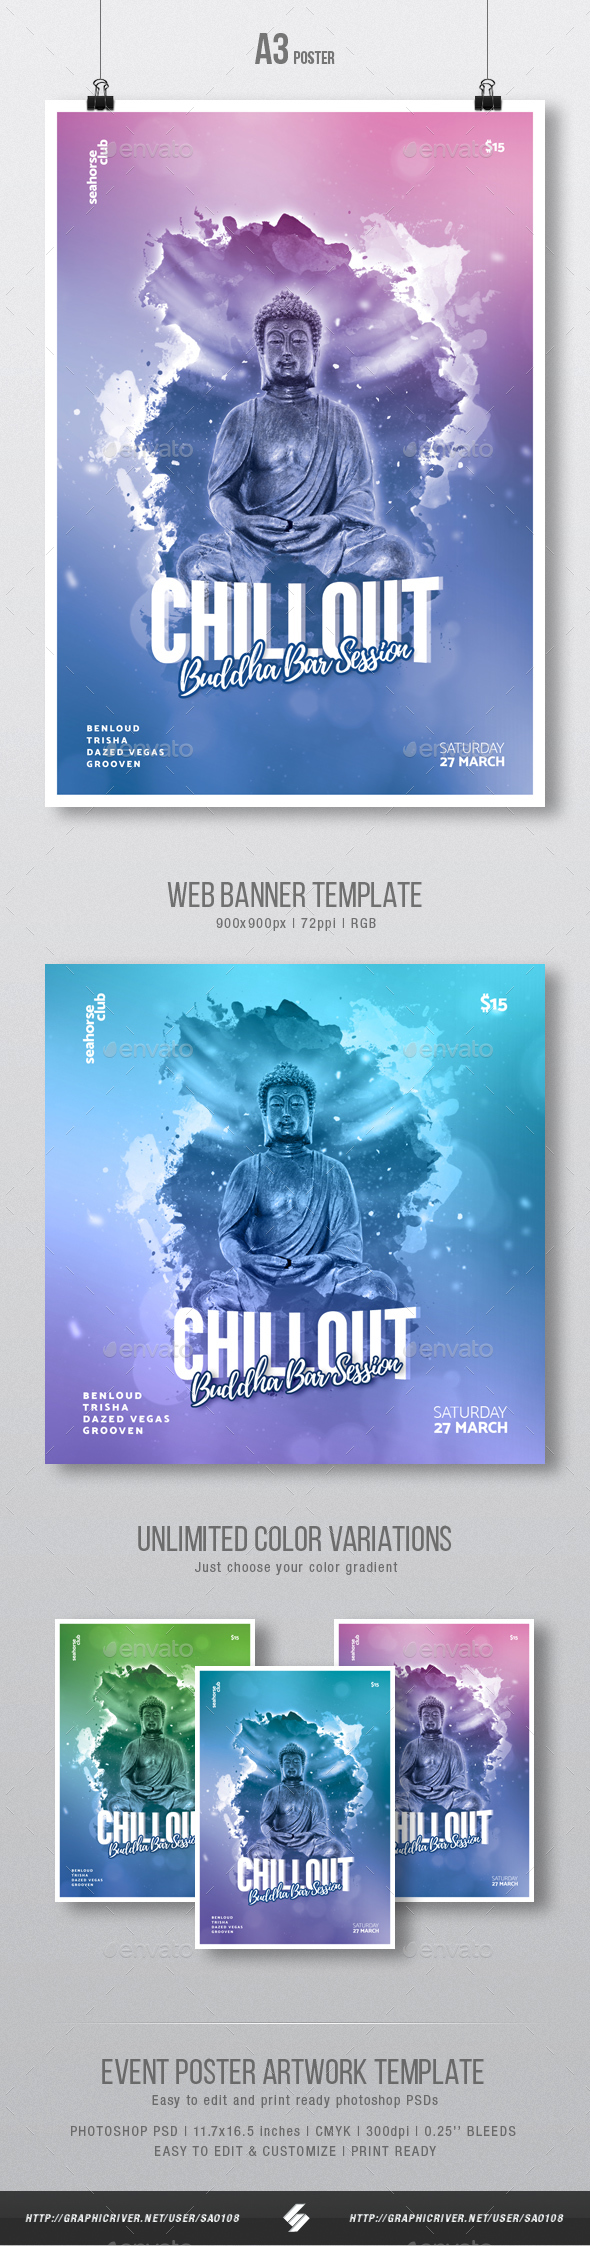 Buddha Bar 4 - Chillout Session Flyer / Poster Artwork Template A3 - Clubs & Parties Events